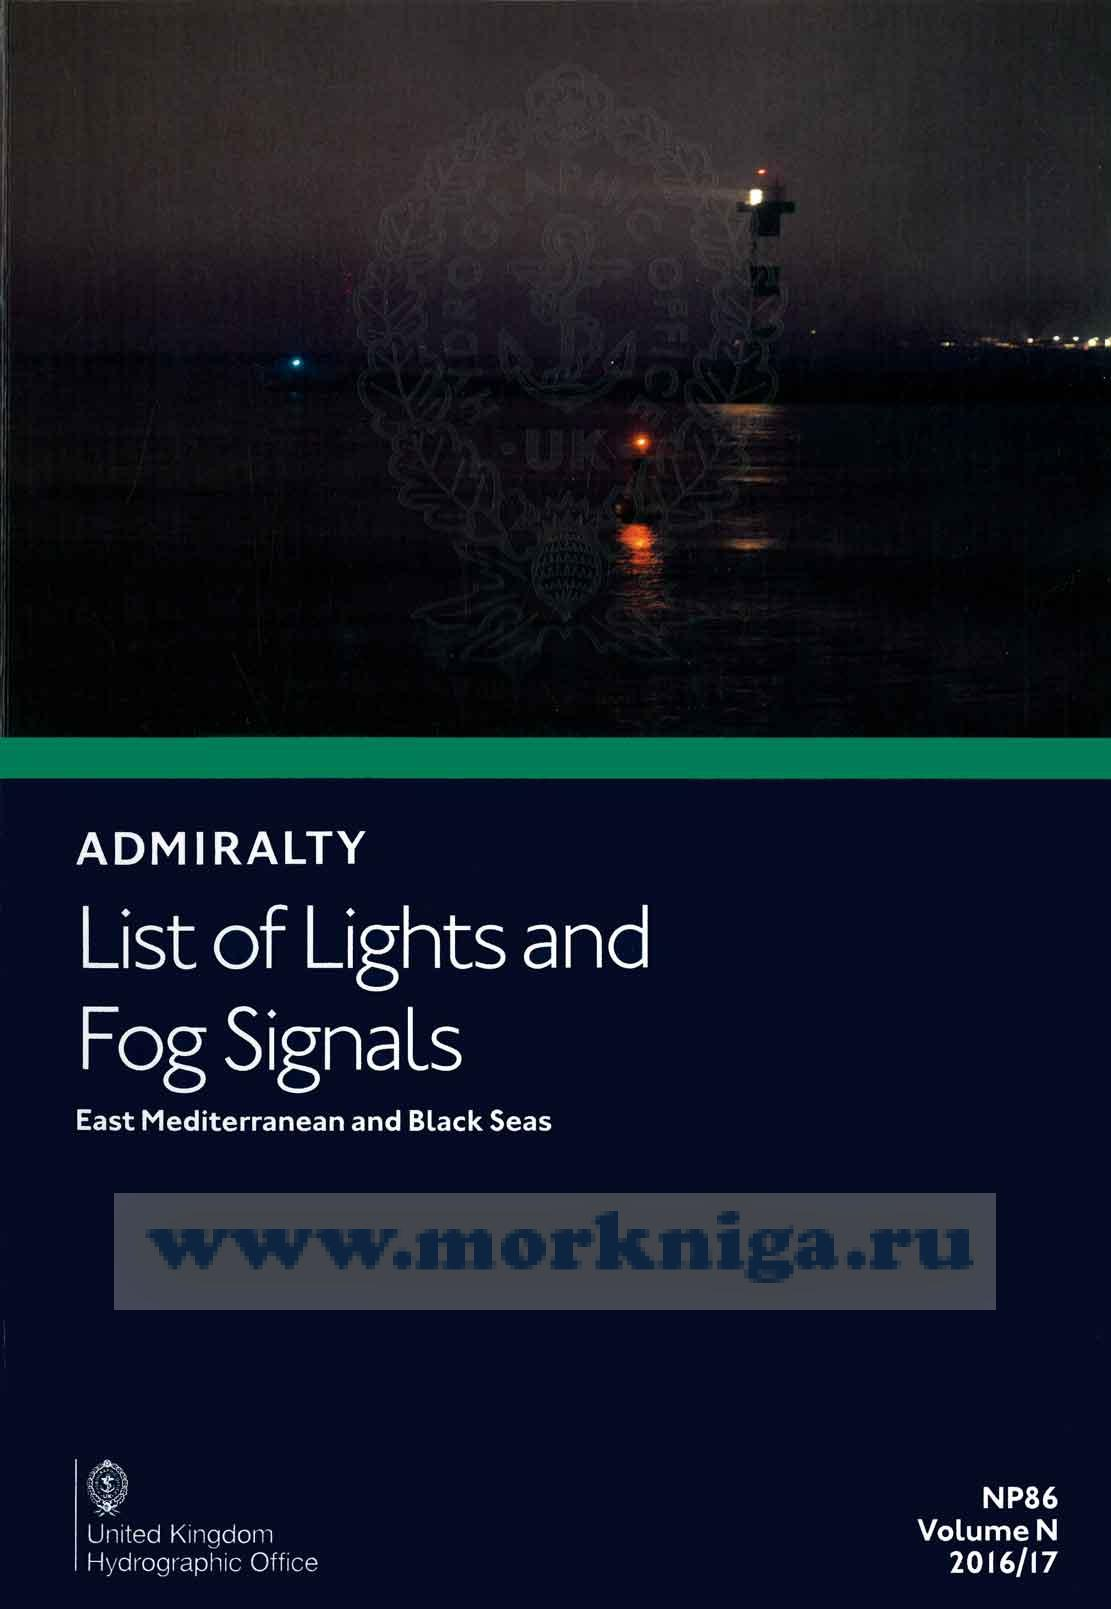 Admiralty list of lights and fog signals. East Mediterranean and Black Seas. NP86. Volume N. 2016/17